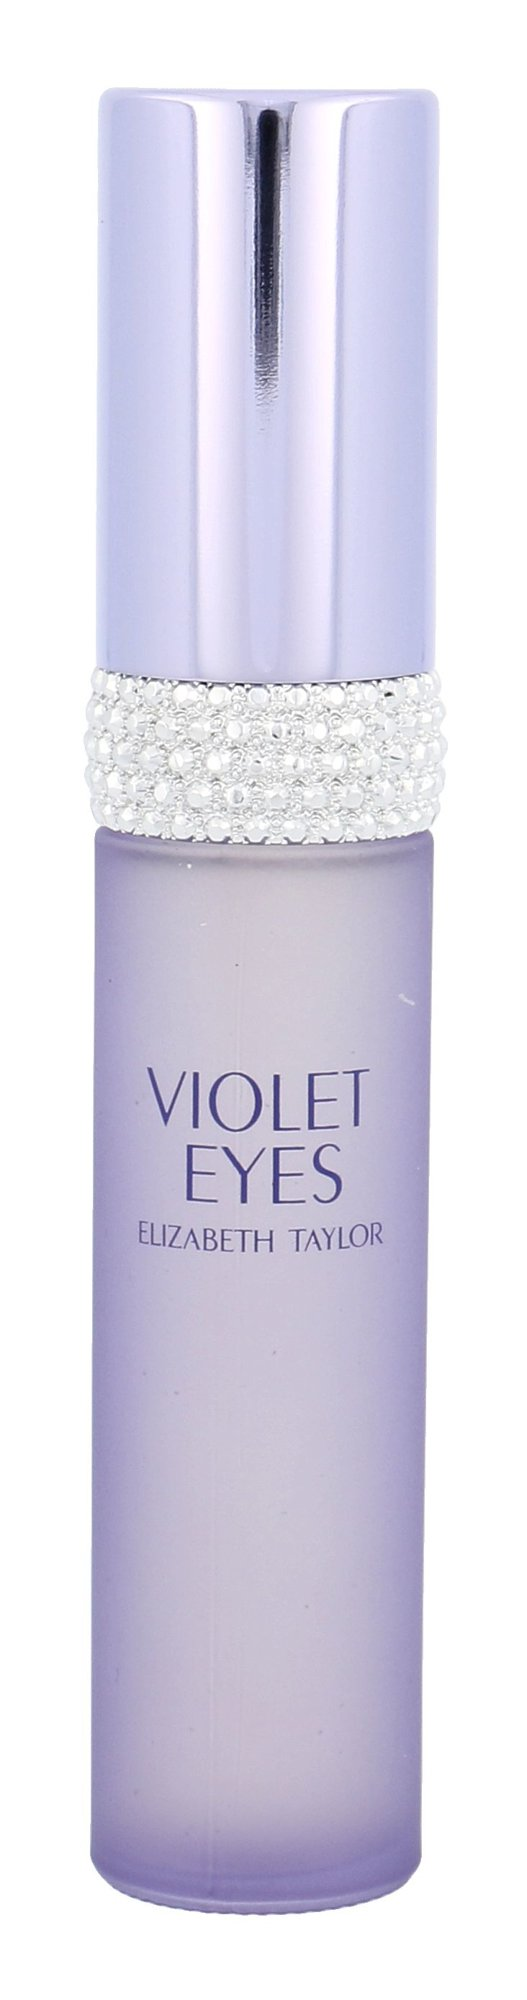 Elizabeth Taylor Violet Eyes EDP 15ml